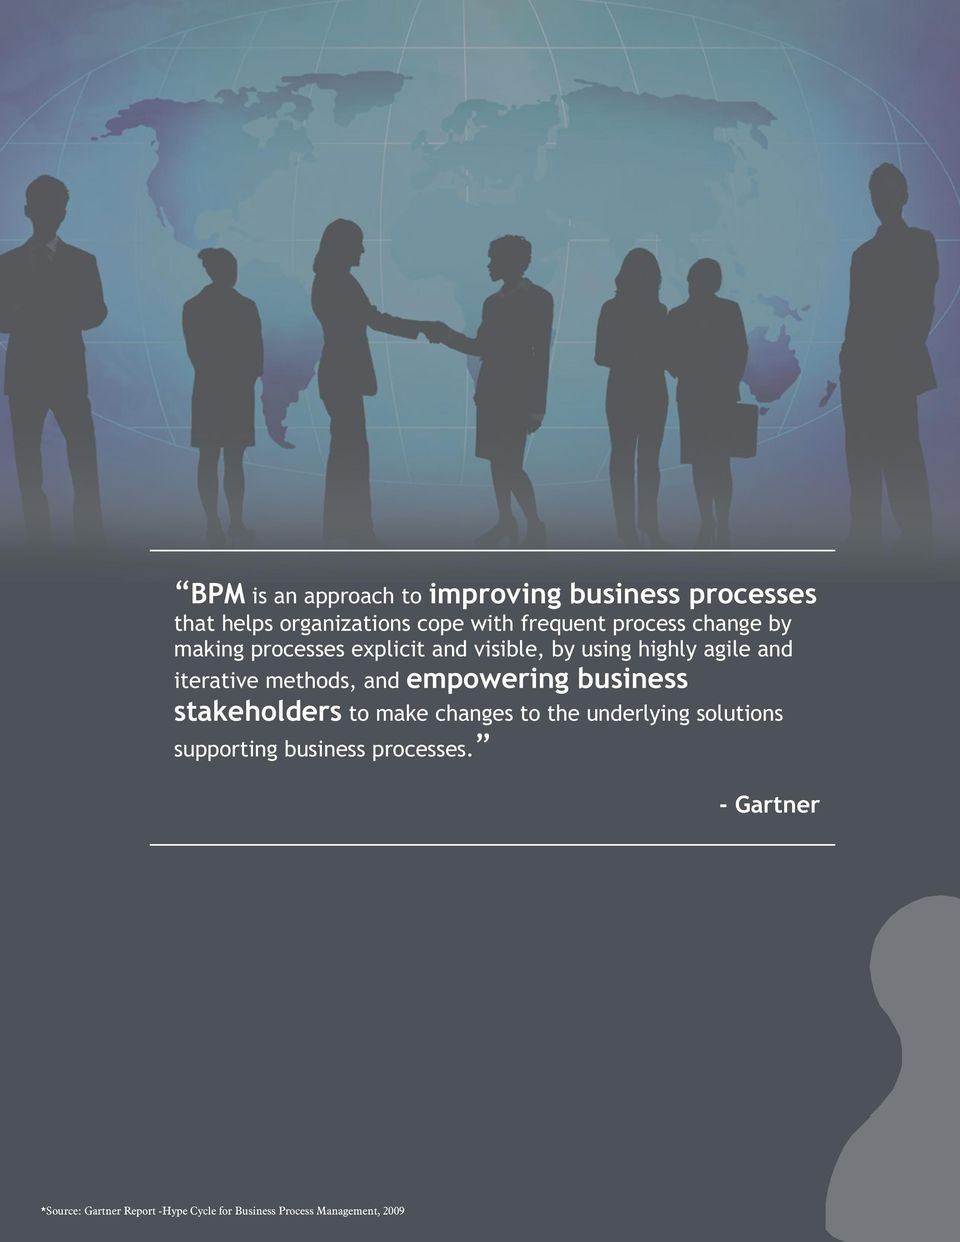 methods, and empowering business stakeholders to make changes to the underlying solutions